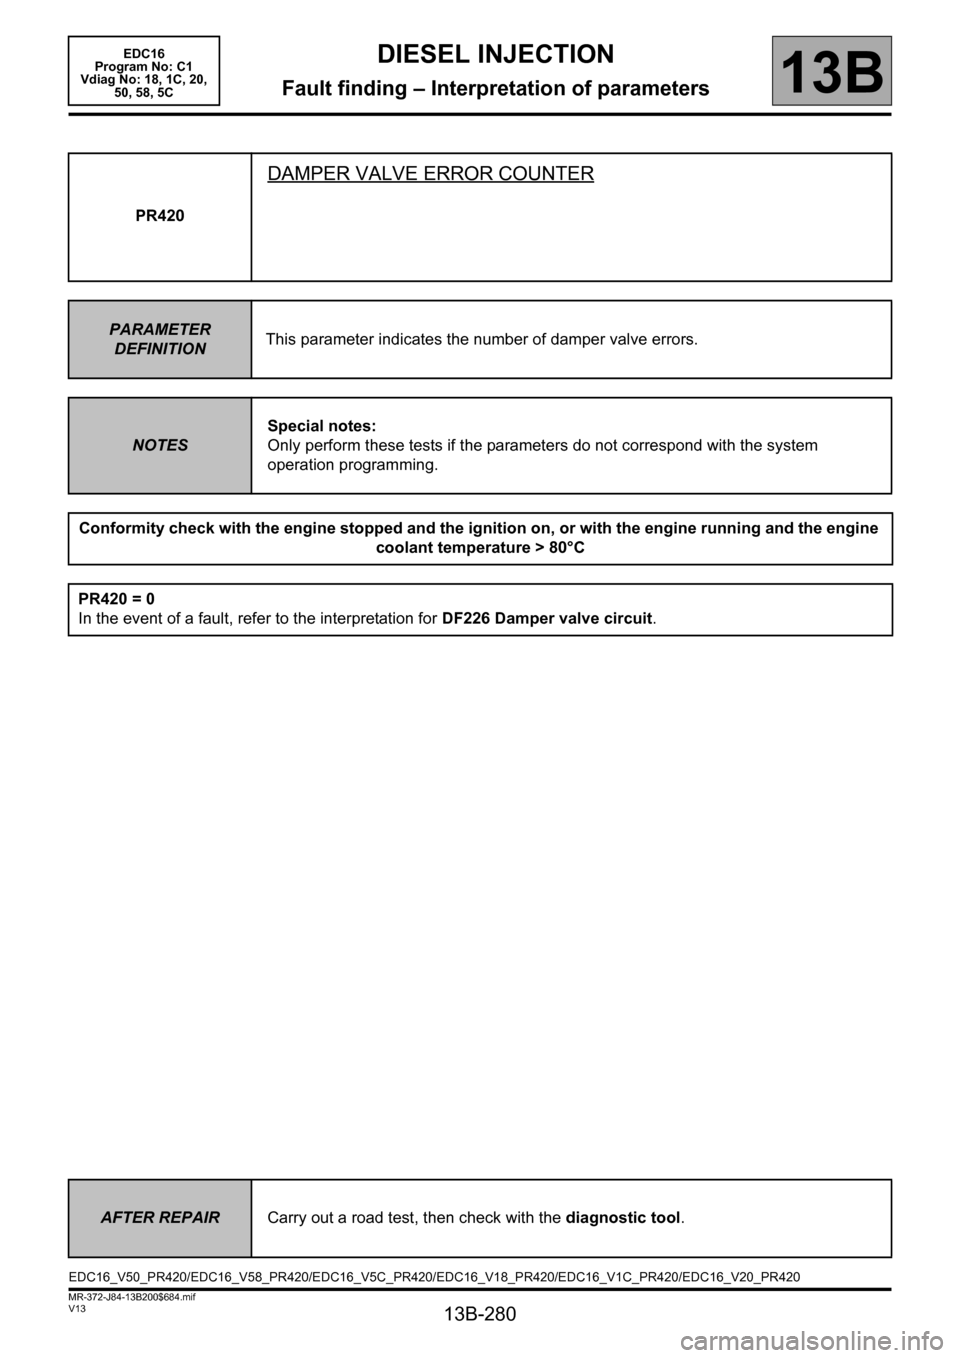 RENAULT SCENIC 2011 J95 / 3.G Engine And Peripherals EDC16 Workshop Manual, Page 280